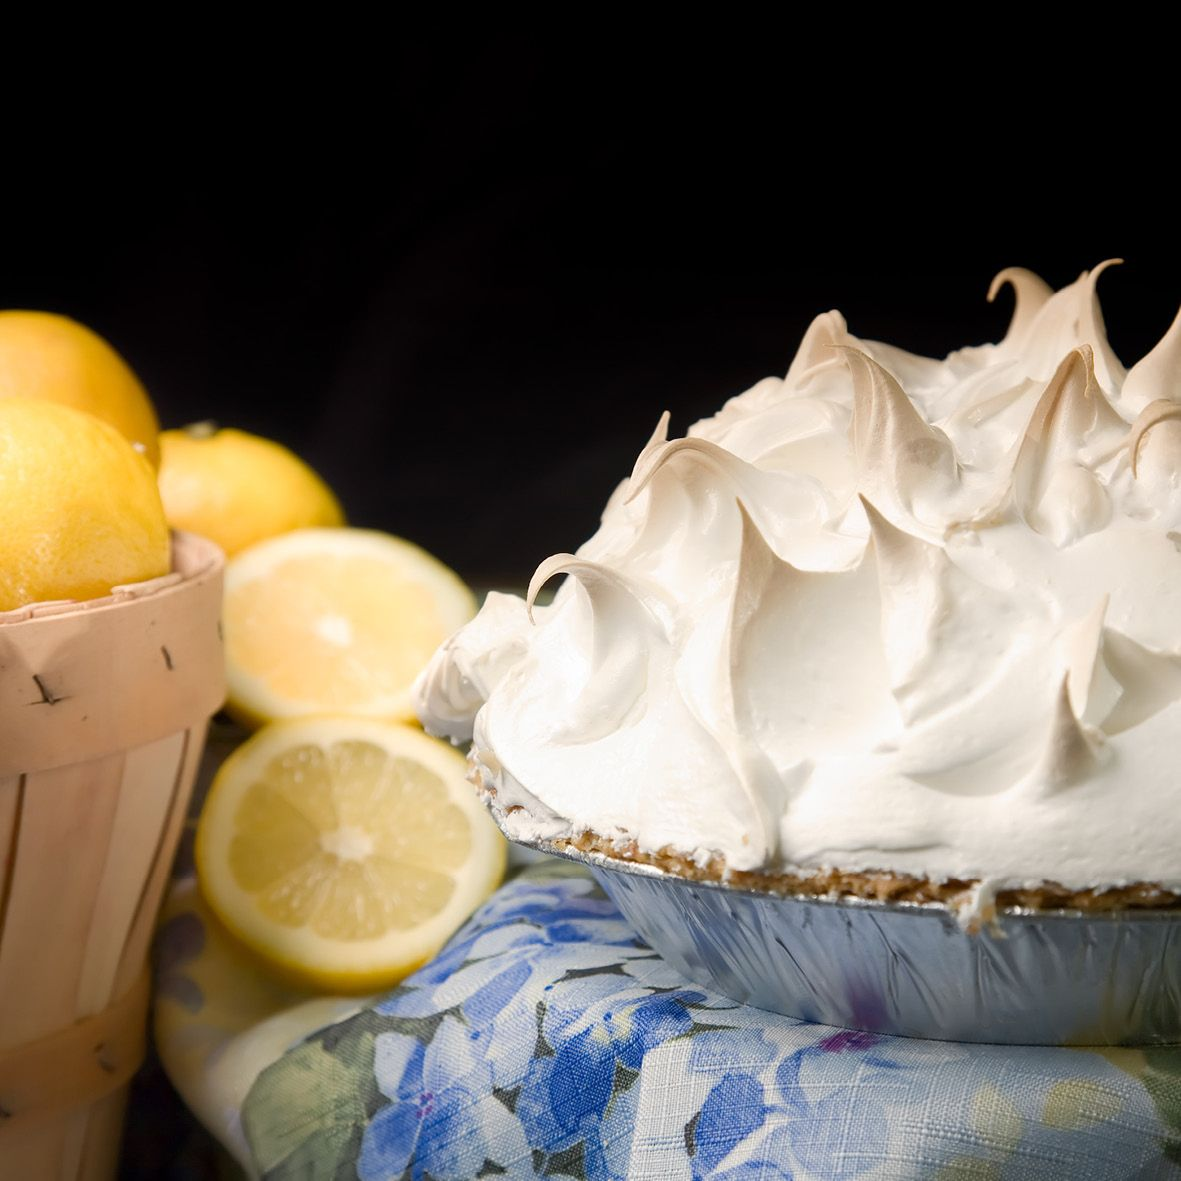 Lemon_Meringue_Pie.jpg